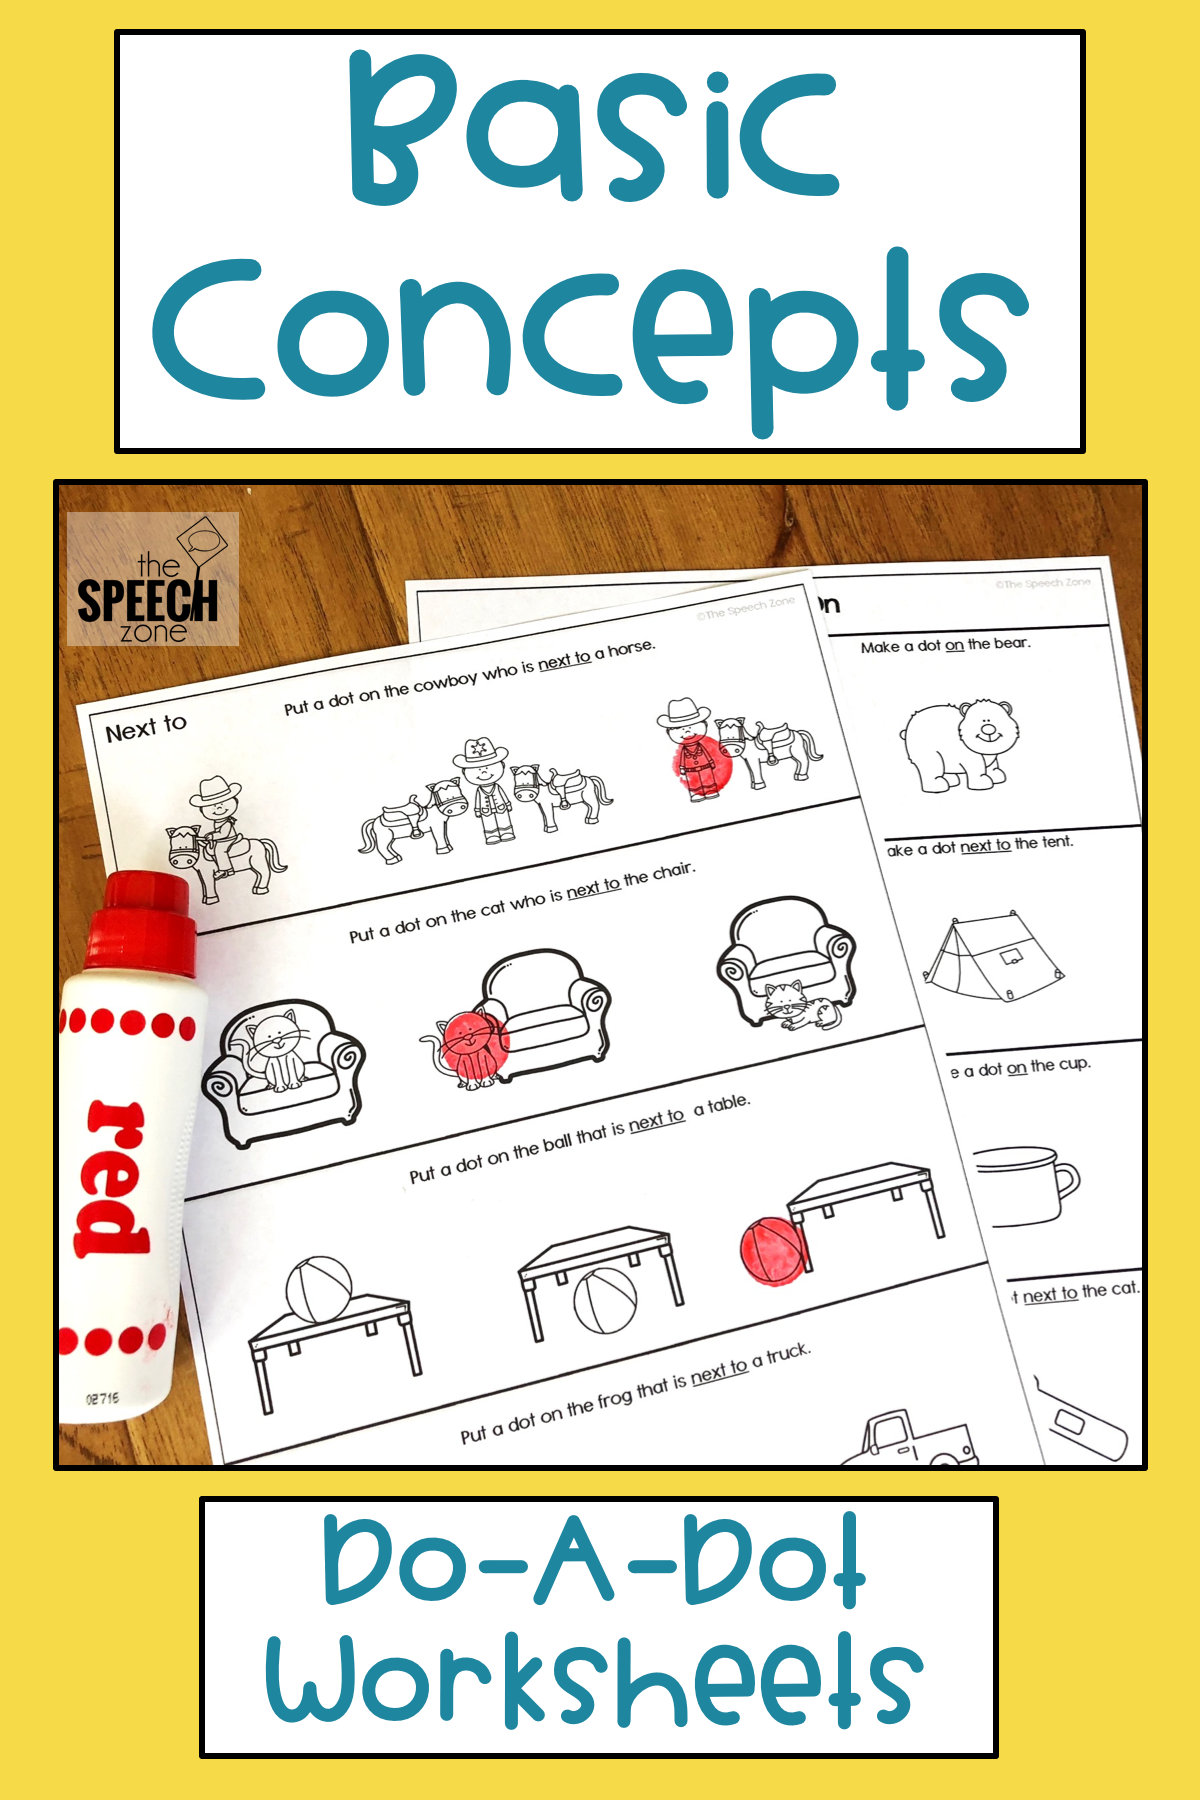 Basic Concepts Worksheets